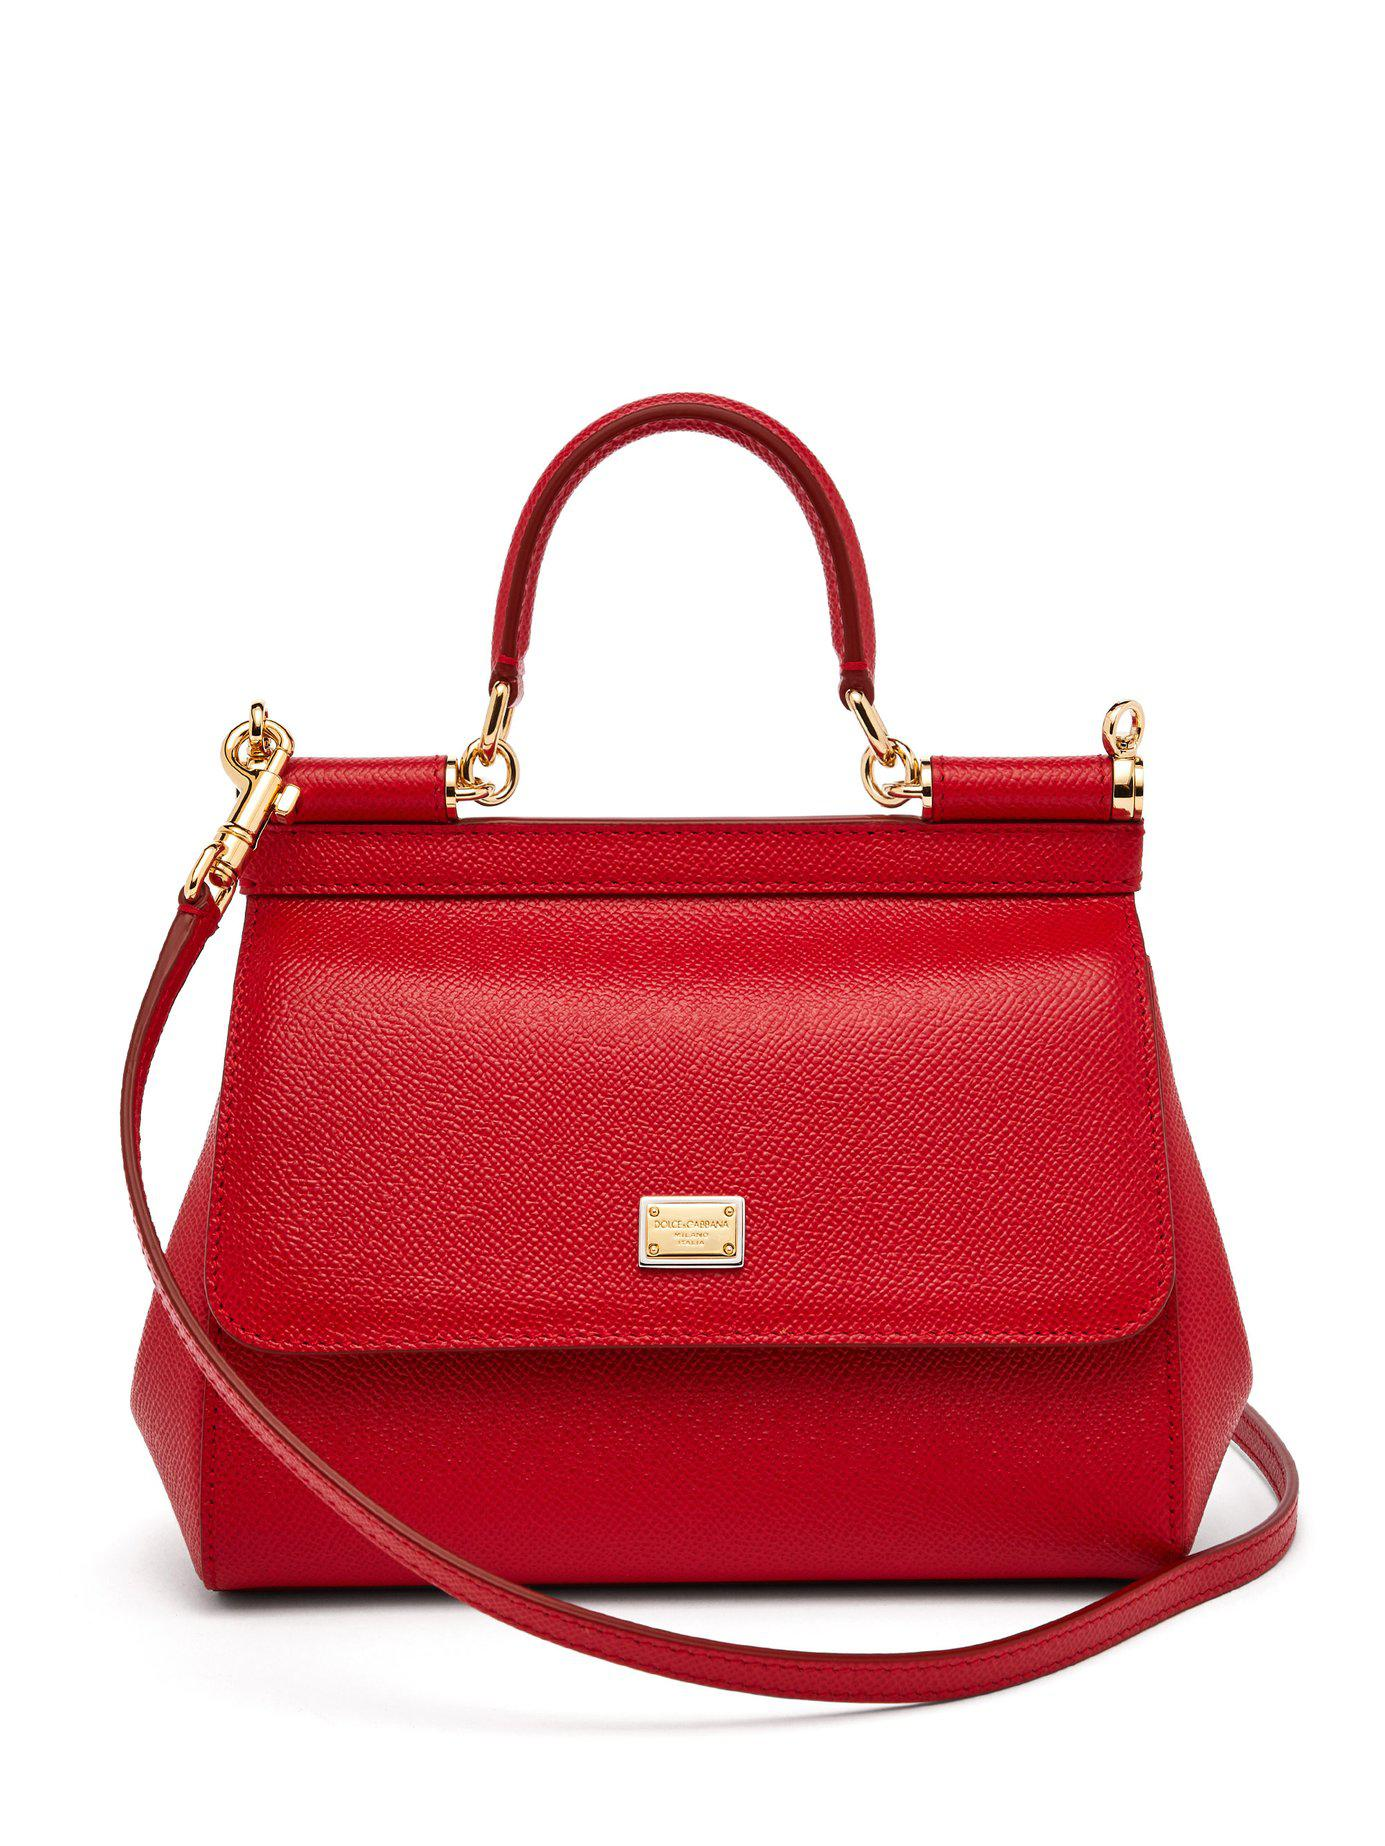 83fc1d60c7fd Lyst - Dolce   Gabbana Sicily Small Dauphine Leather Bag in Red